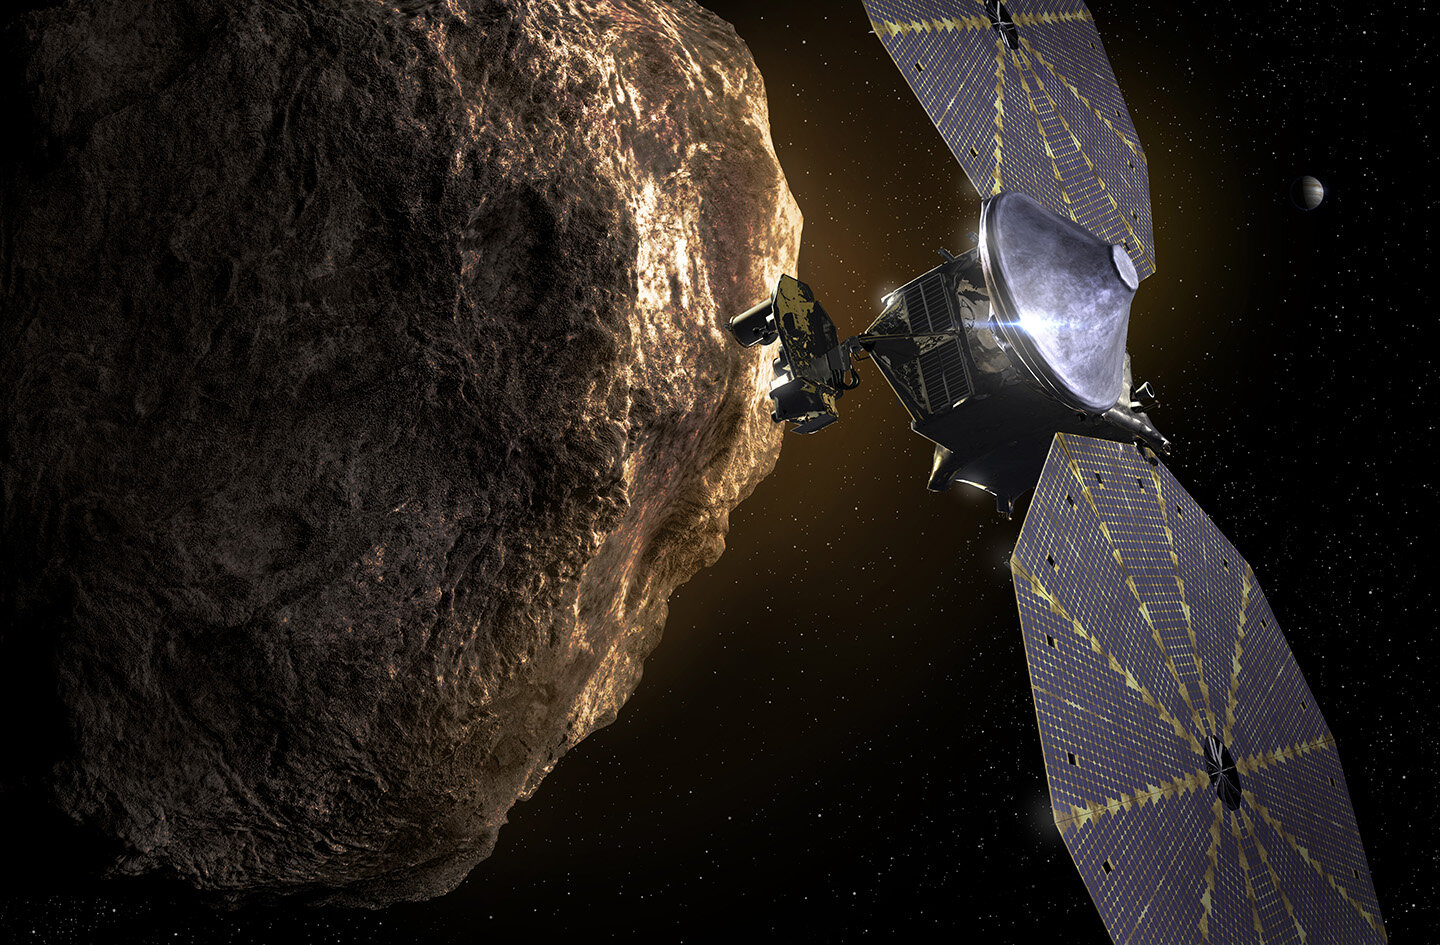 How the Sun affects asteroids in our neighborhood